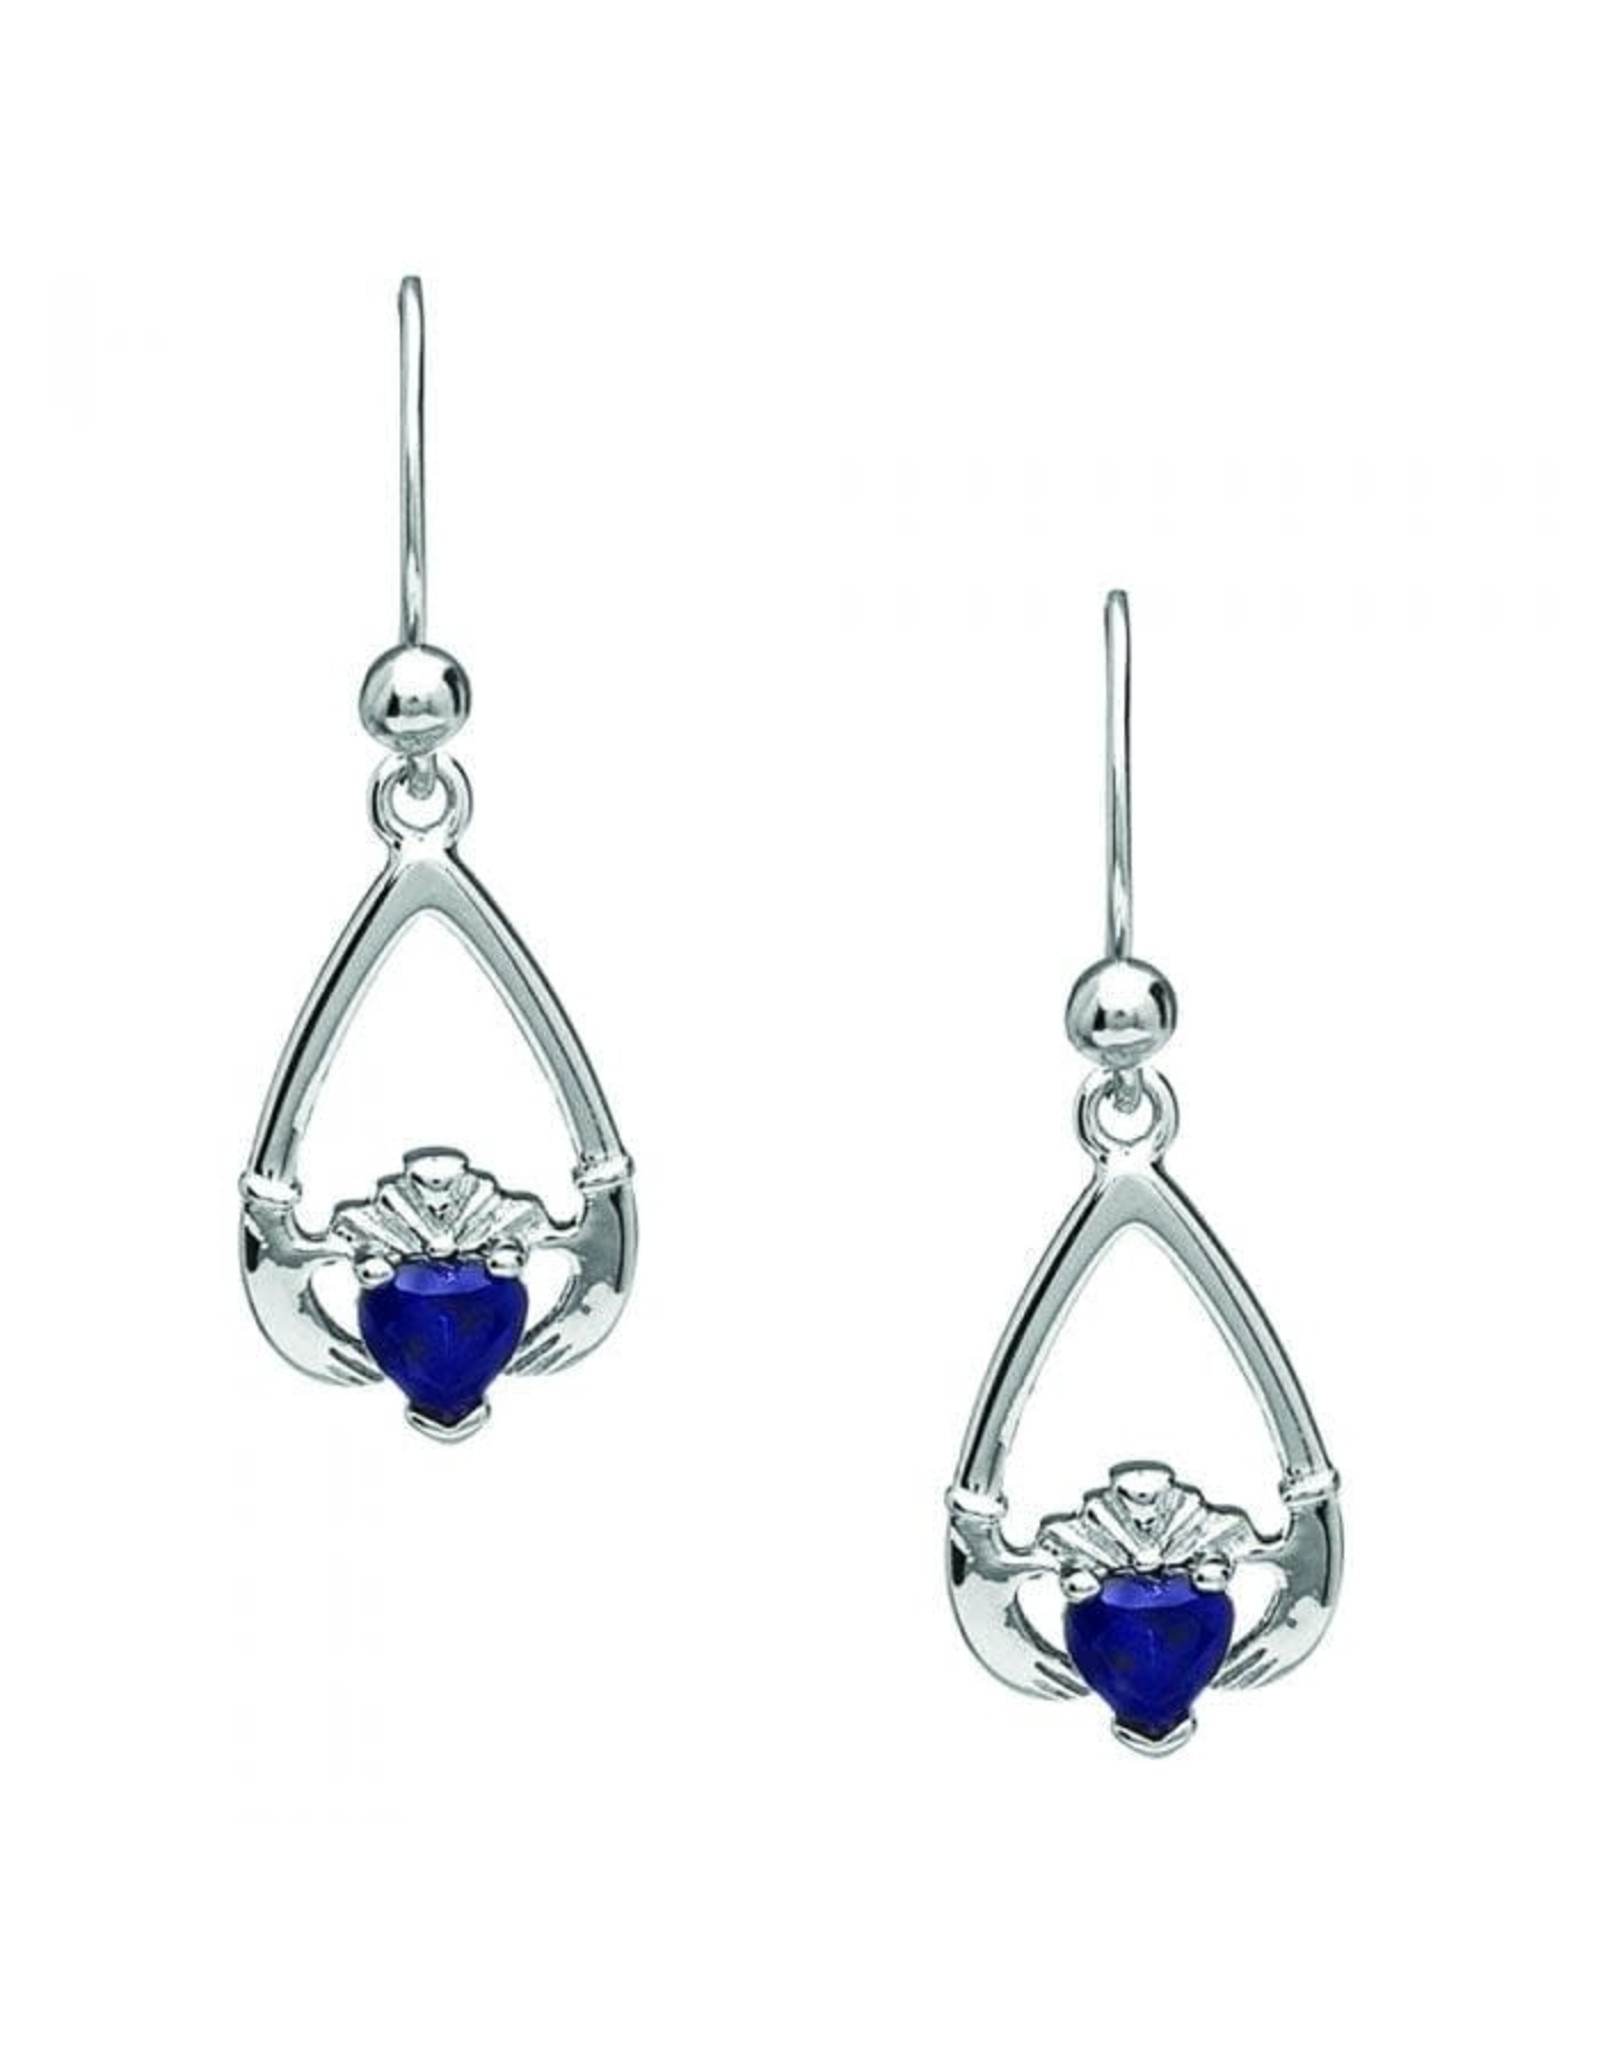 Boru Jewelry Birthstone Claddagh Earrings for Each Month